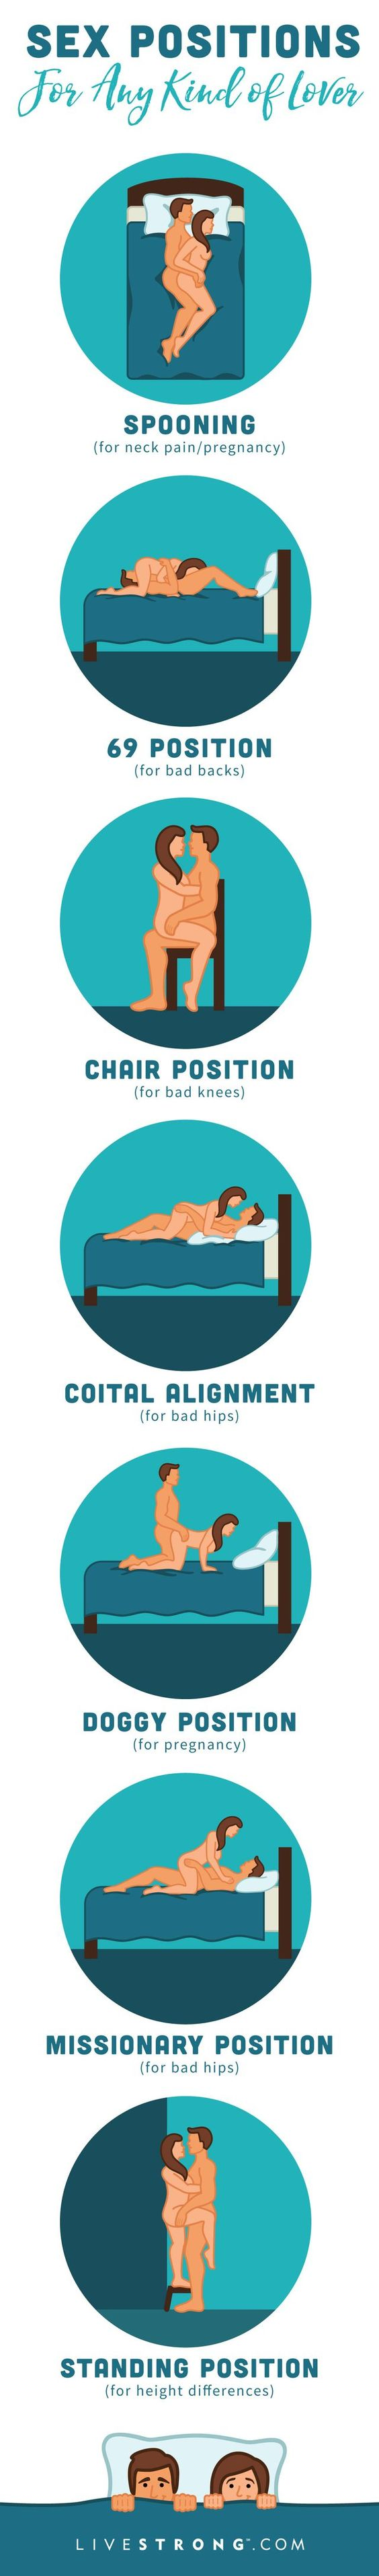 The Best Sex Positions for Any Kind of Lover